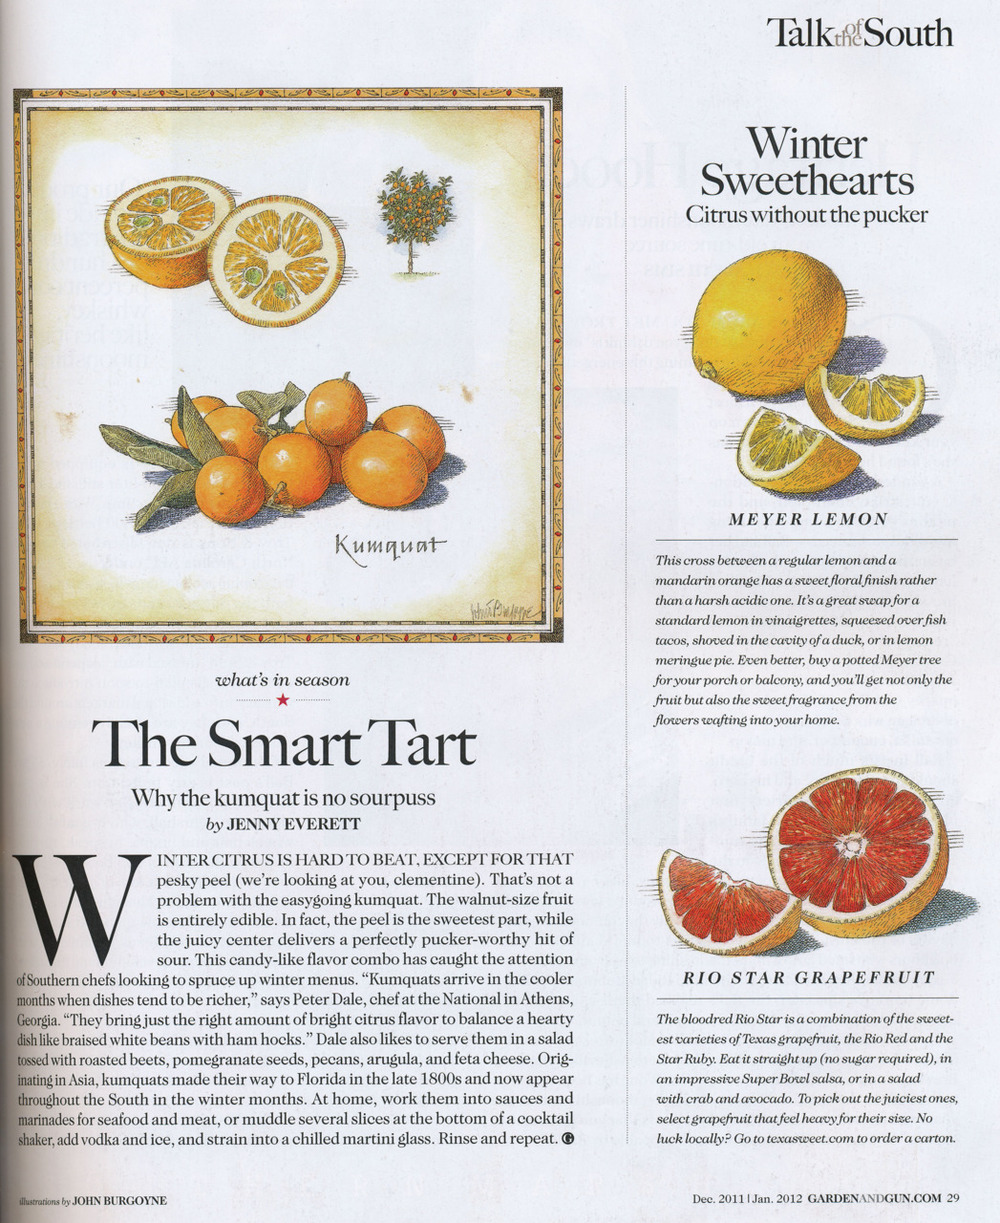 "Chef Dale gets a word in about kumquats as a welcome winter citrus in this month's Garden and Gun, Dec 2011/Jan 2012 {""Kumquats arrive in the cooler months when dishes tend to be richer,"" says Peter Dale, chef at The National in Athens, Georgia. ""They bring just the right amount of bright citrus flavor to balance a hearty dish like braised white beans with ham hocks."" Dale also likes to serve them in a salad tossed with roasted beets, pomegranate seeds, pecans, arugula, and feta cheese.} Look out for this beet and kumquat salad on our menu, as well as kumquats served with fish and other hearty winter dishes in the upcoming weeks."